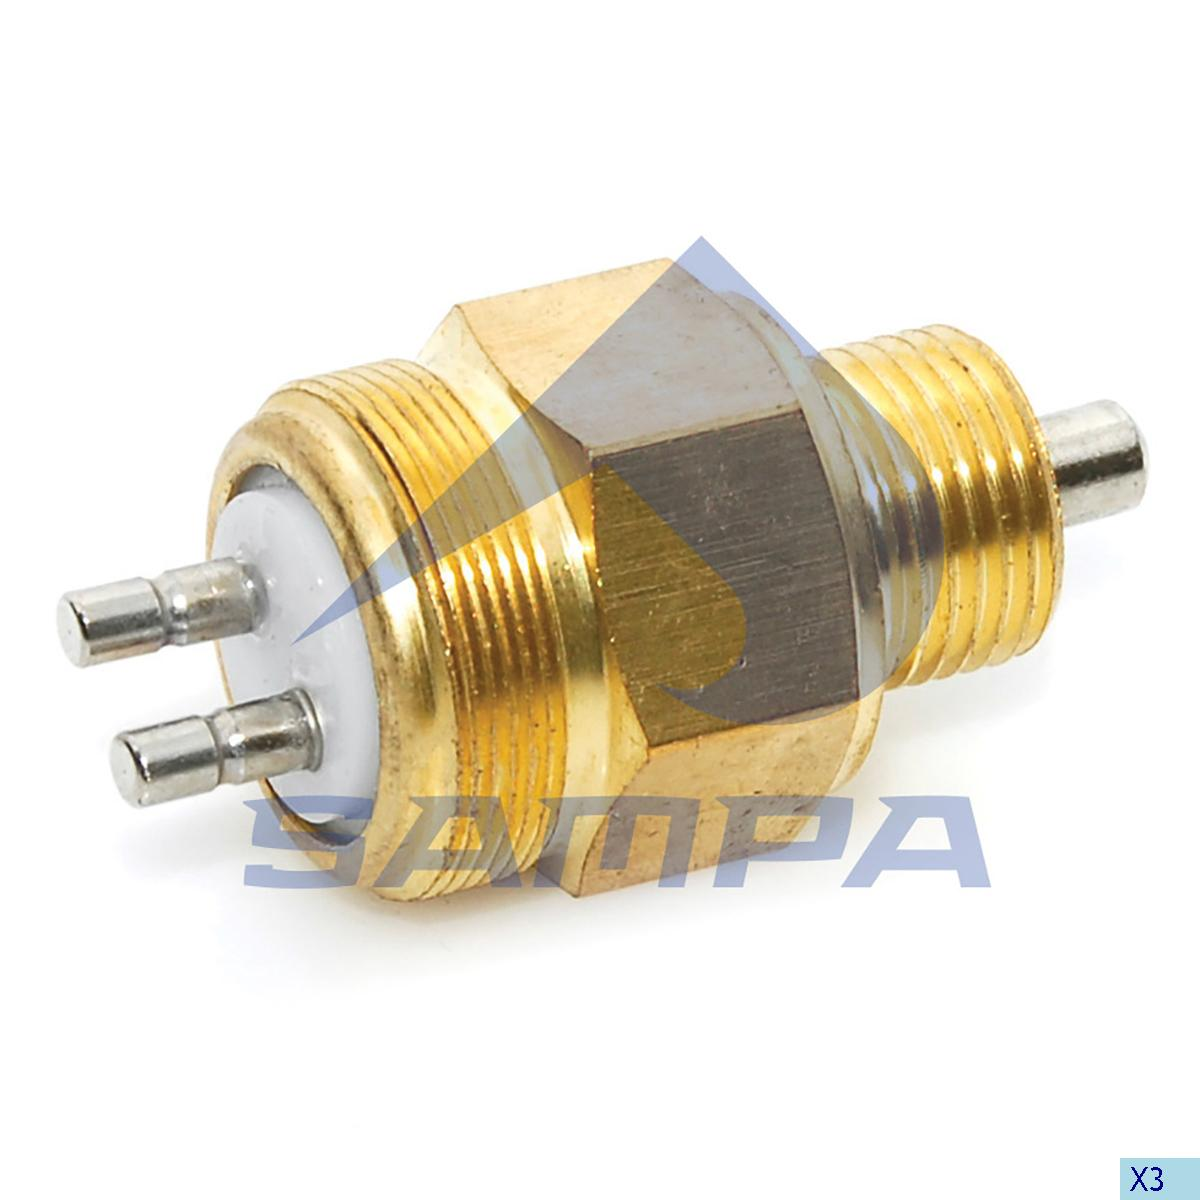 Pressure Sensor, Man, Electric System